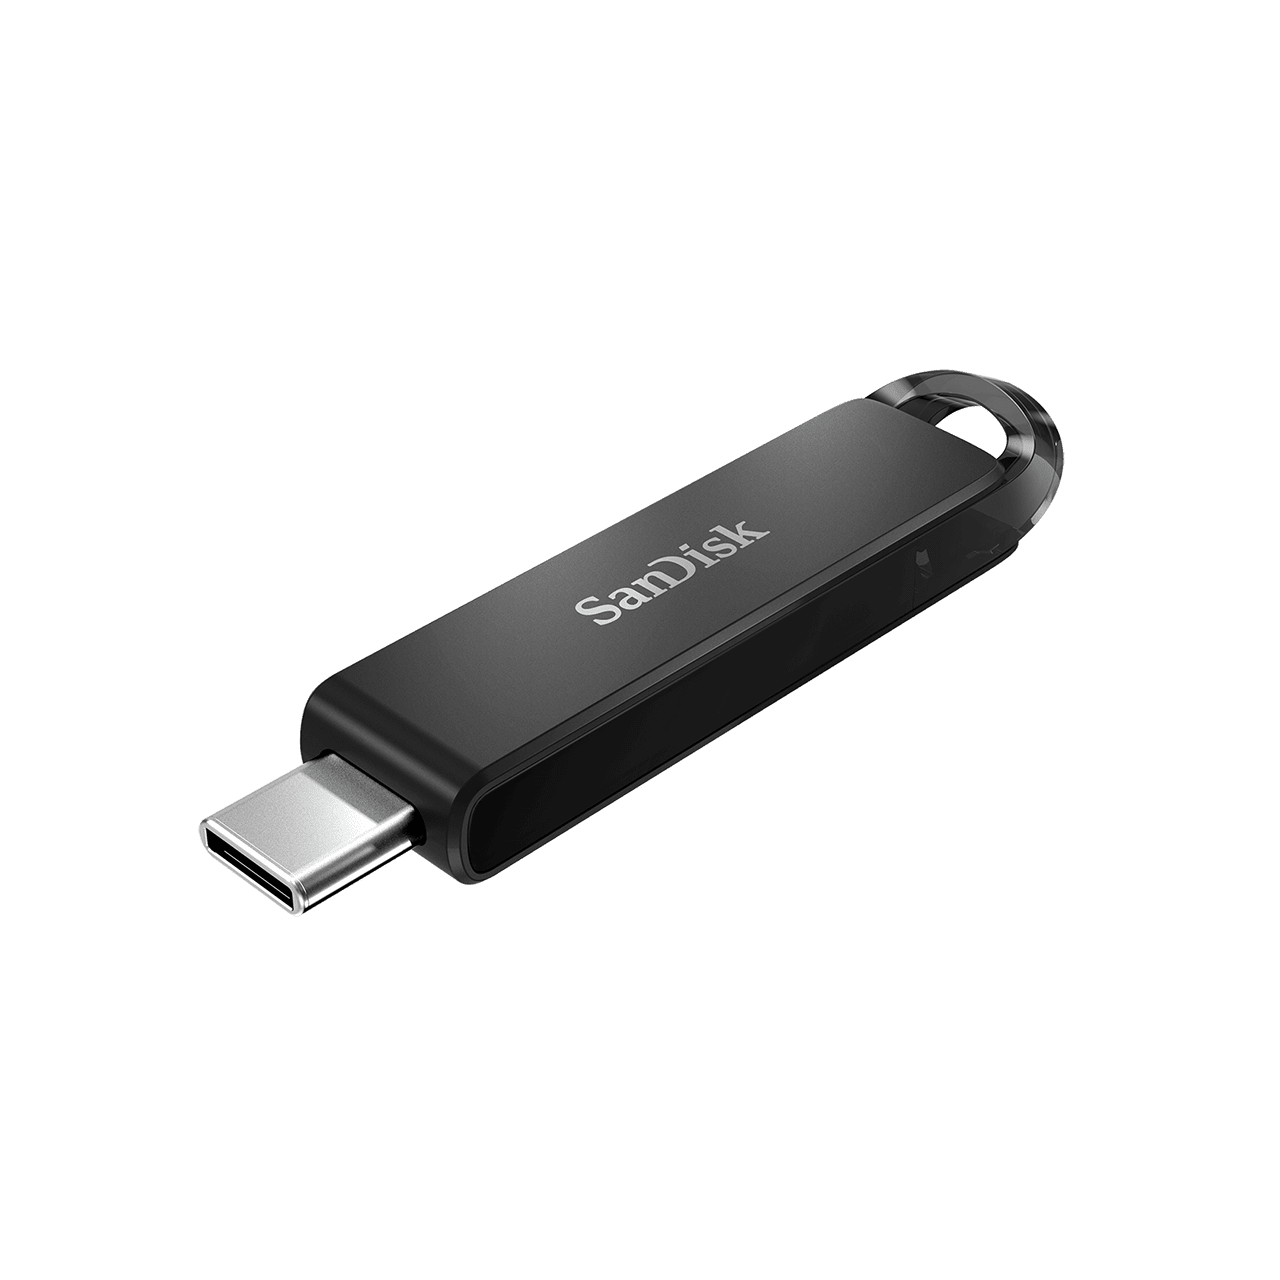 SanDisk Ultra USB-C Flash Drive 64GB